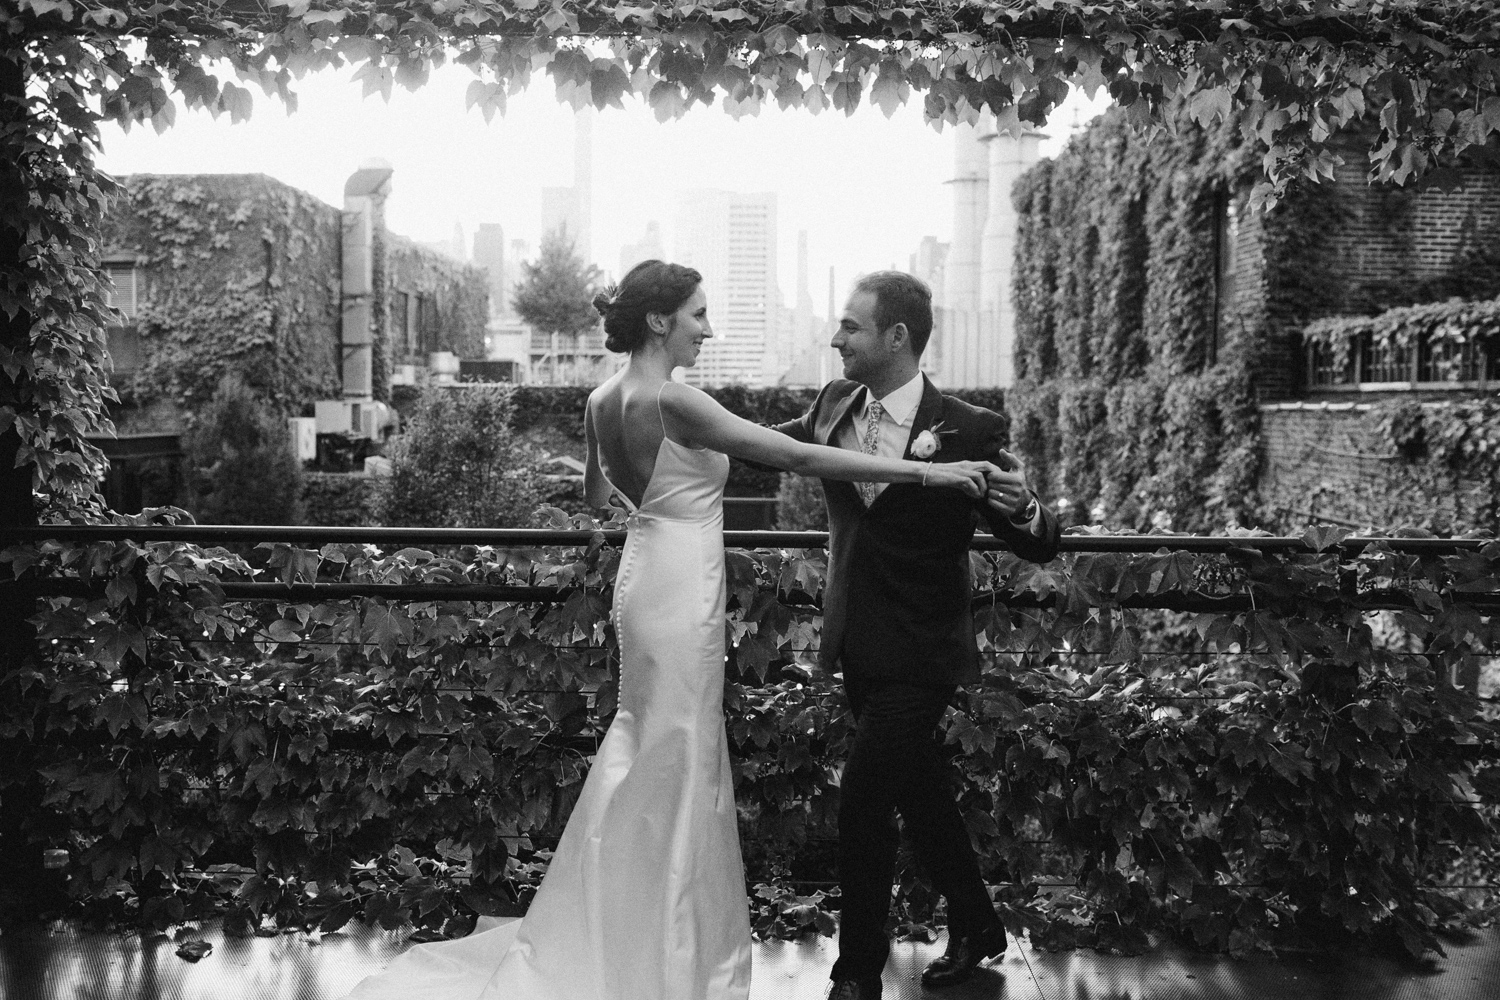 The-Foundry-UNIQUE-LAPIN-Photography-elegant-hipster-wedding-76.jpg